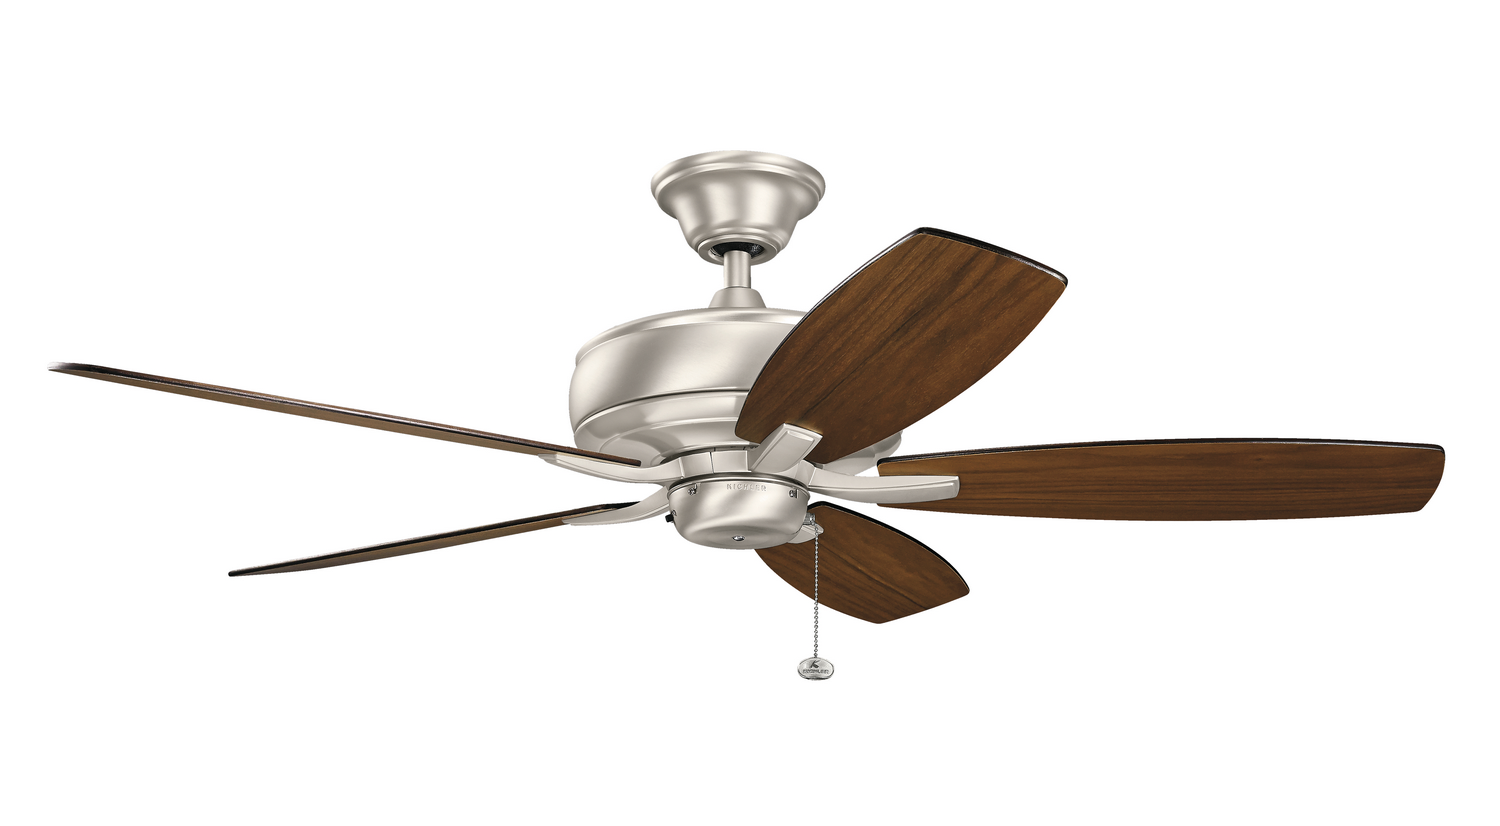 52 inchCeiling Fan from the Terra collection by Kichler 330247NI